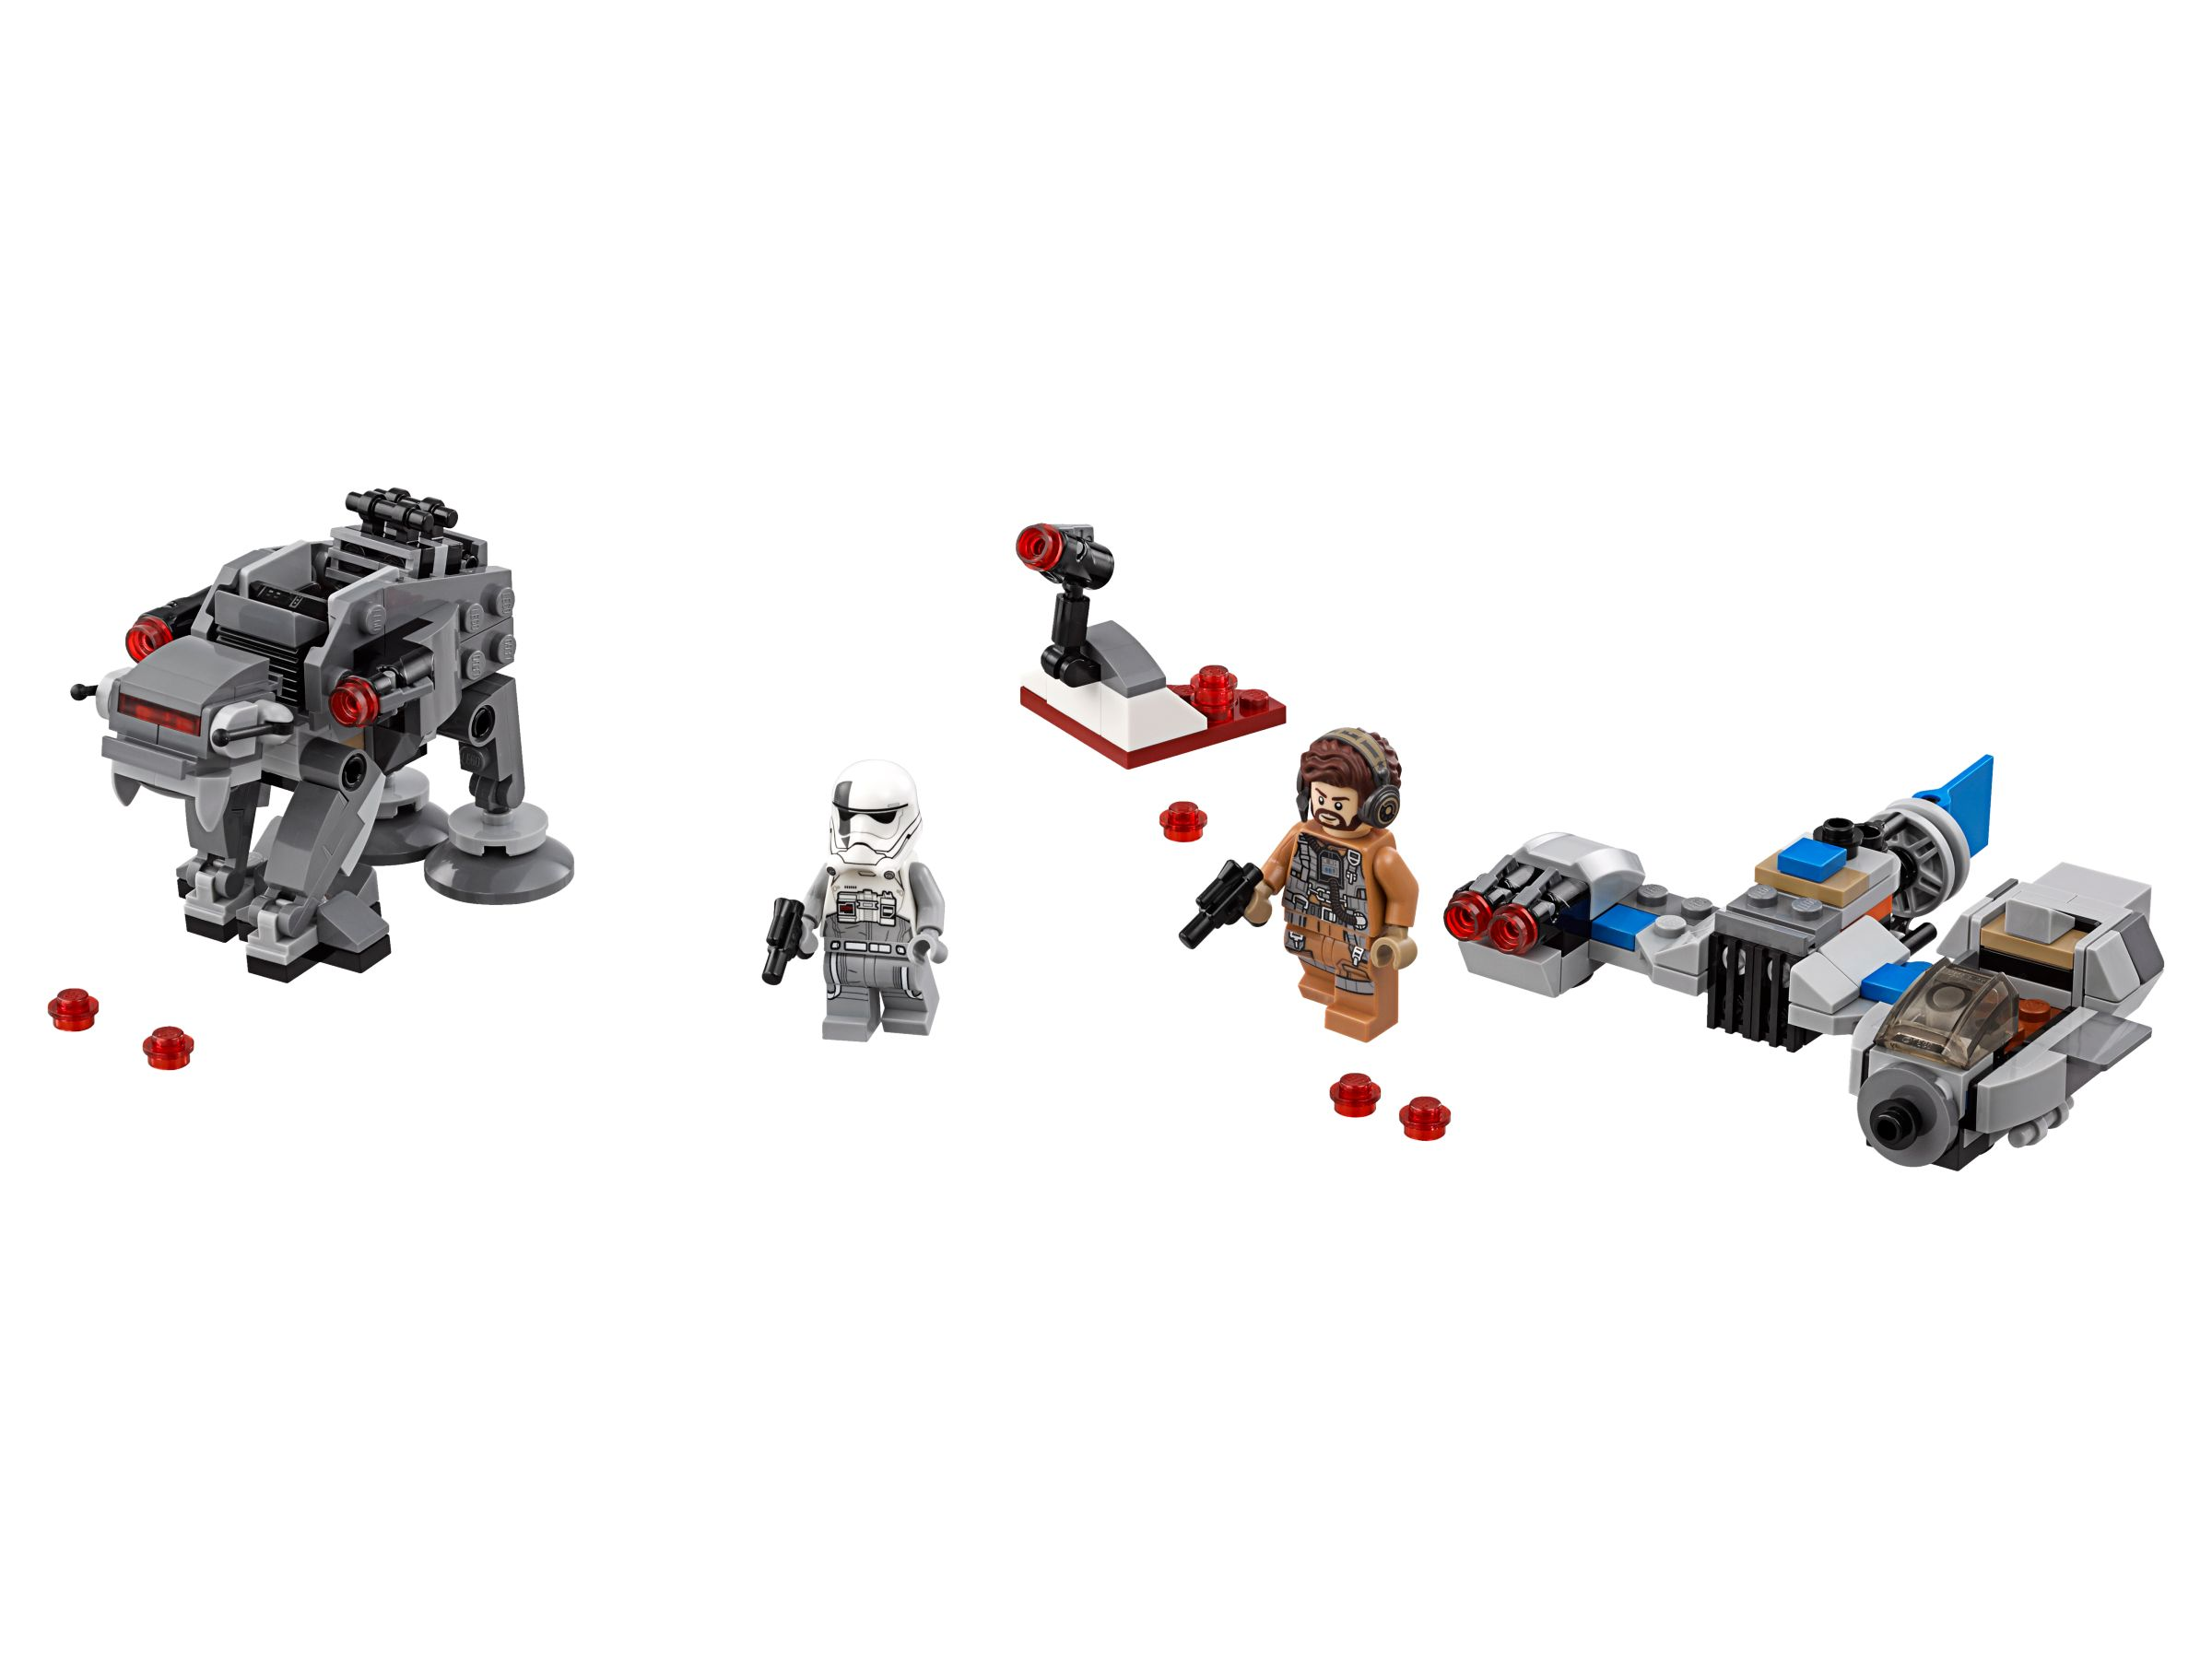 LEGO Star Wars 75195 Ski Speeder™ vs. First Order Walker™ Microfighters